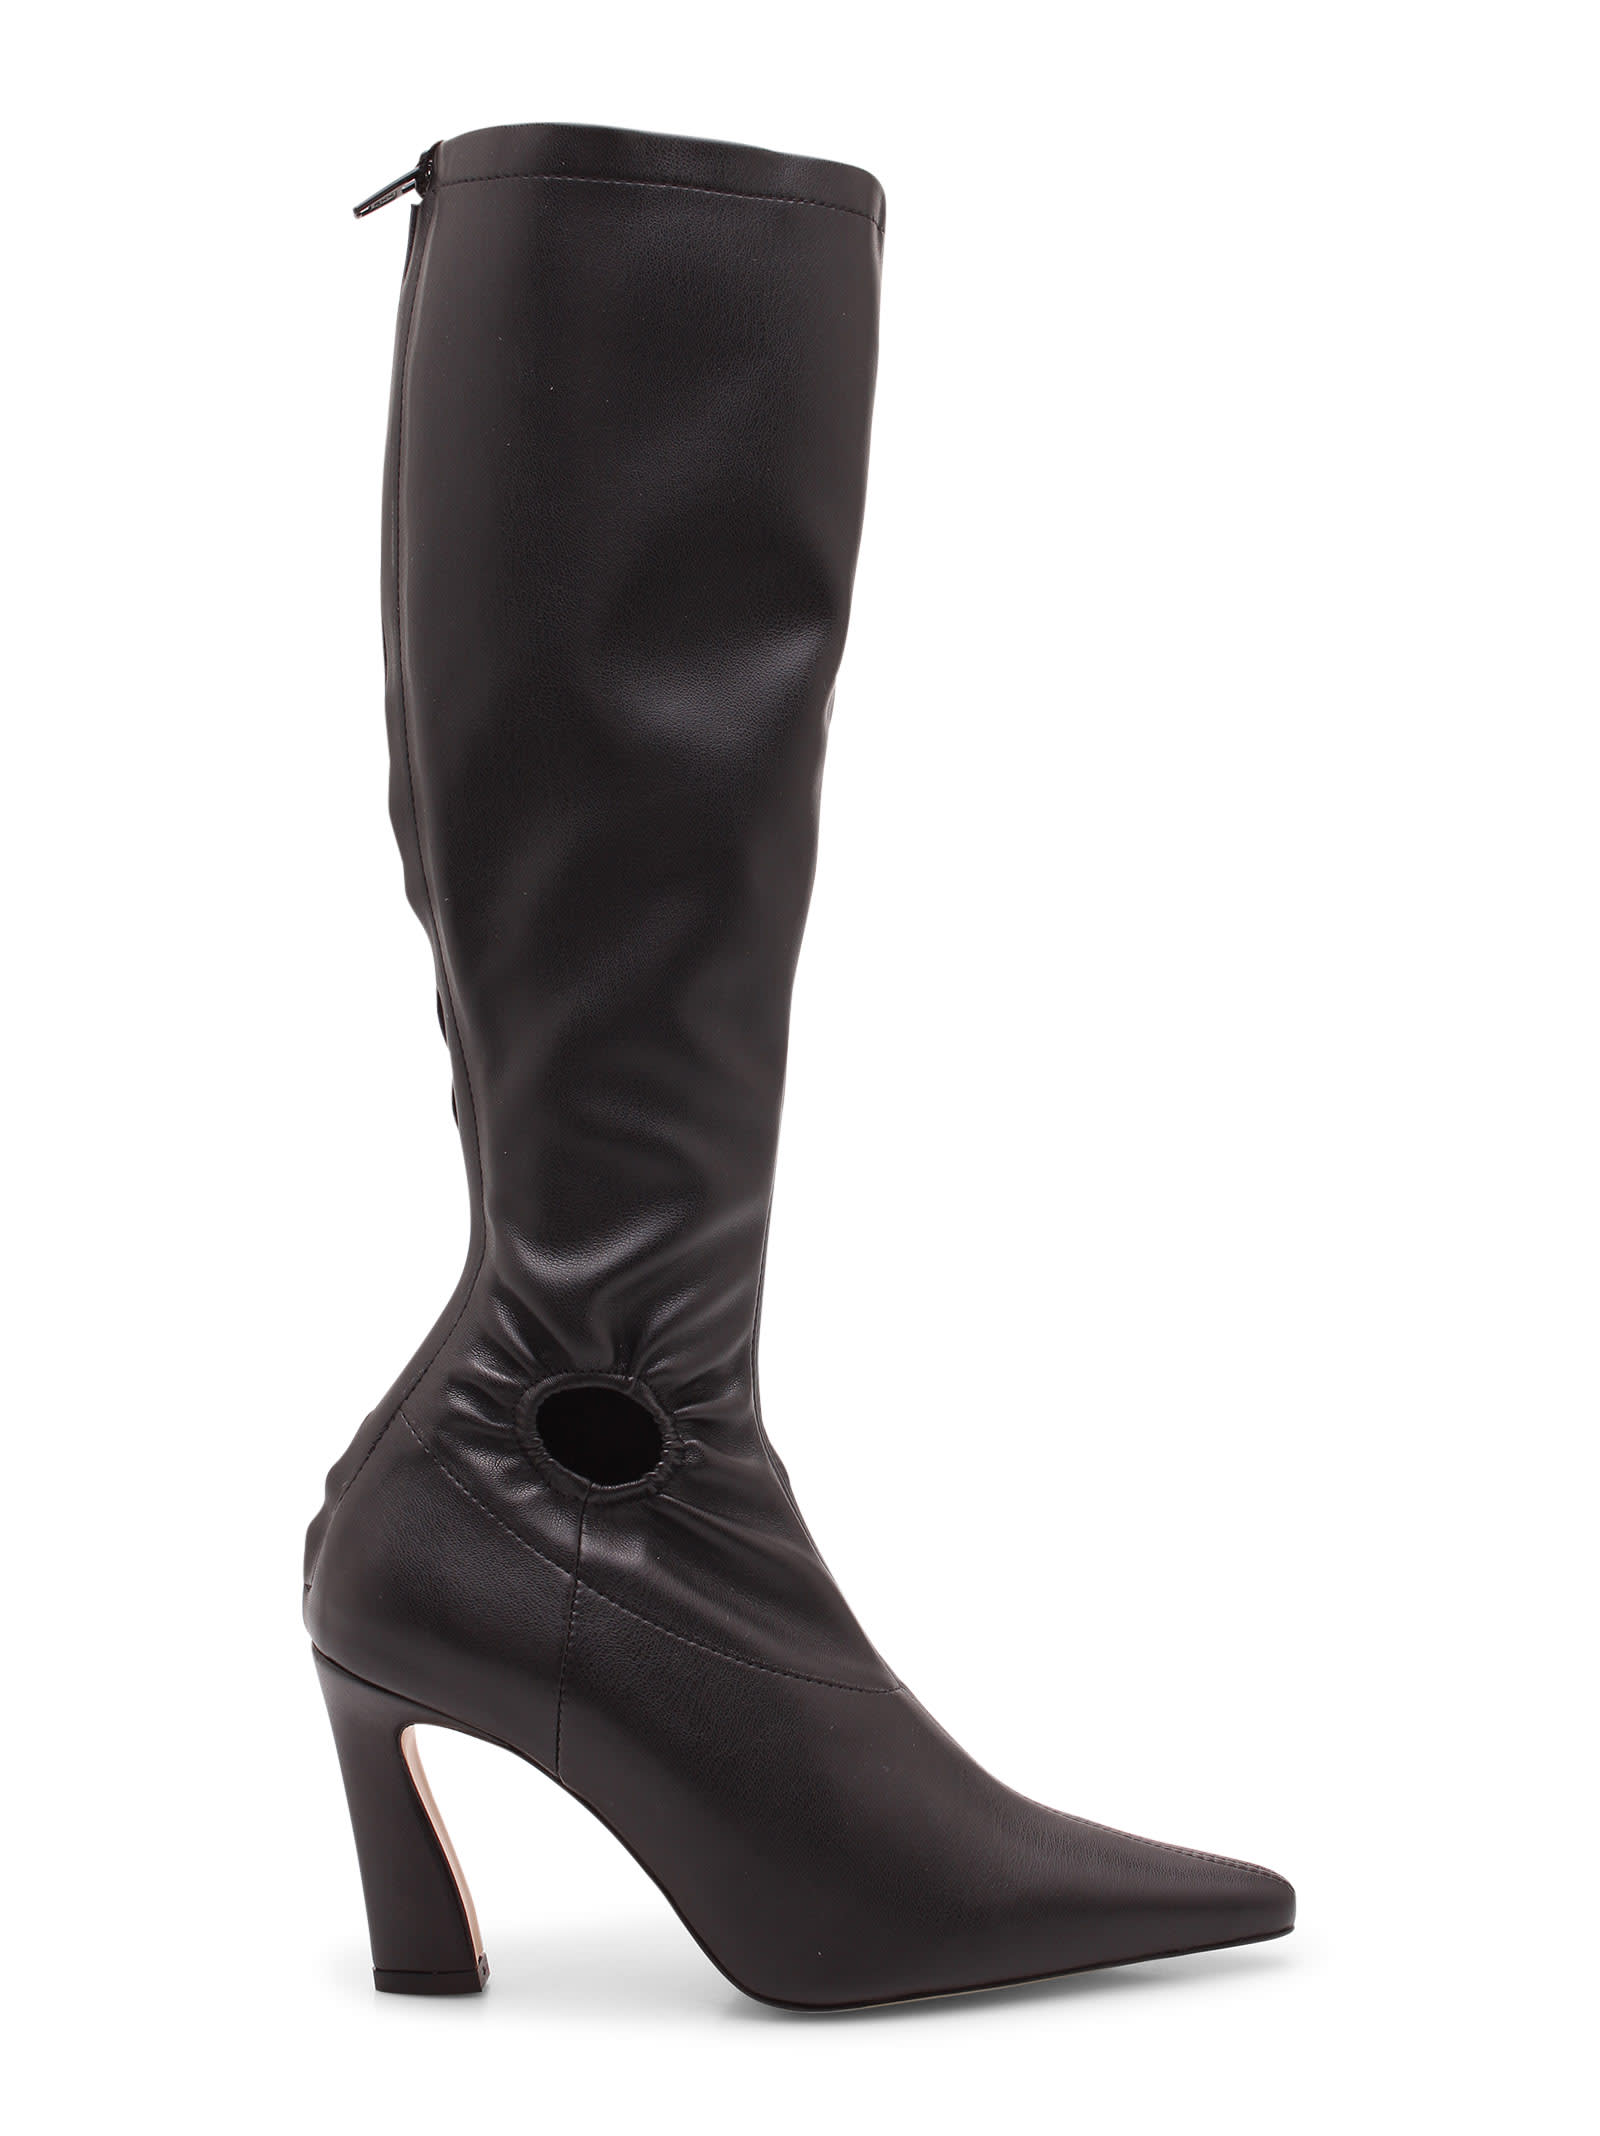 fory Knee Vegan Leather Boots